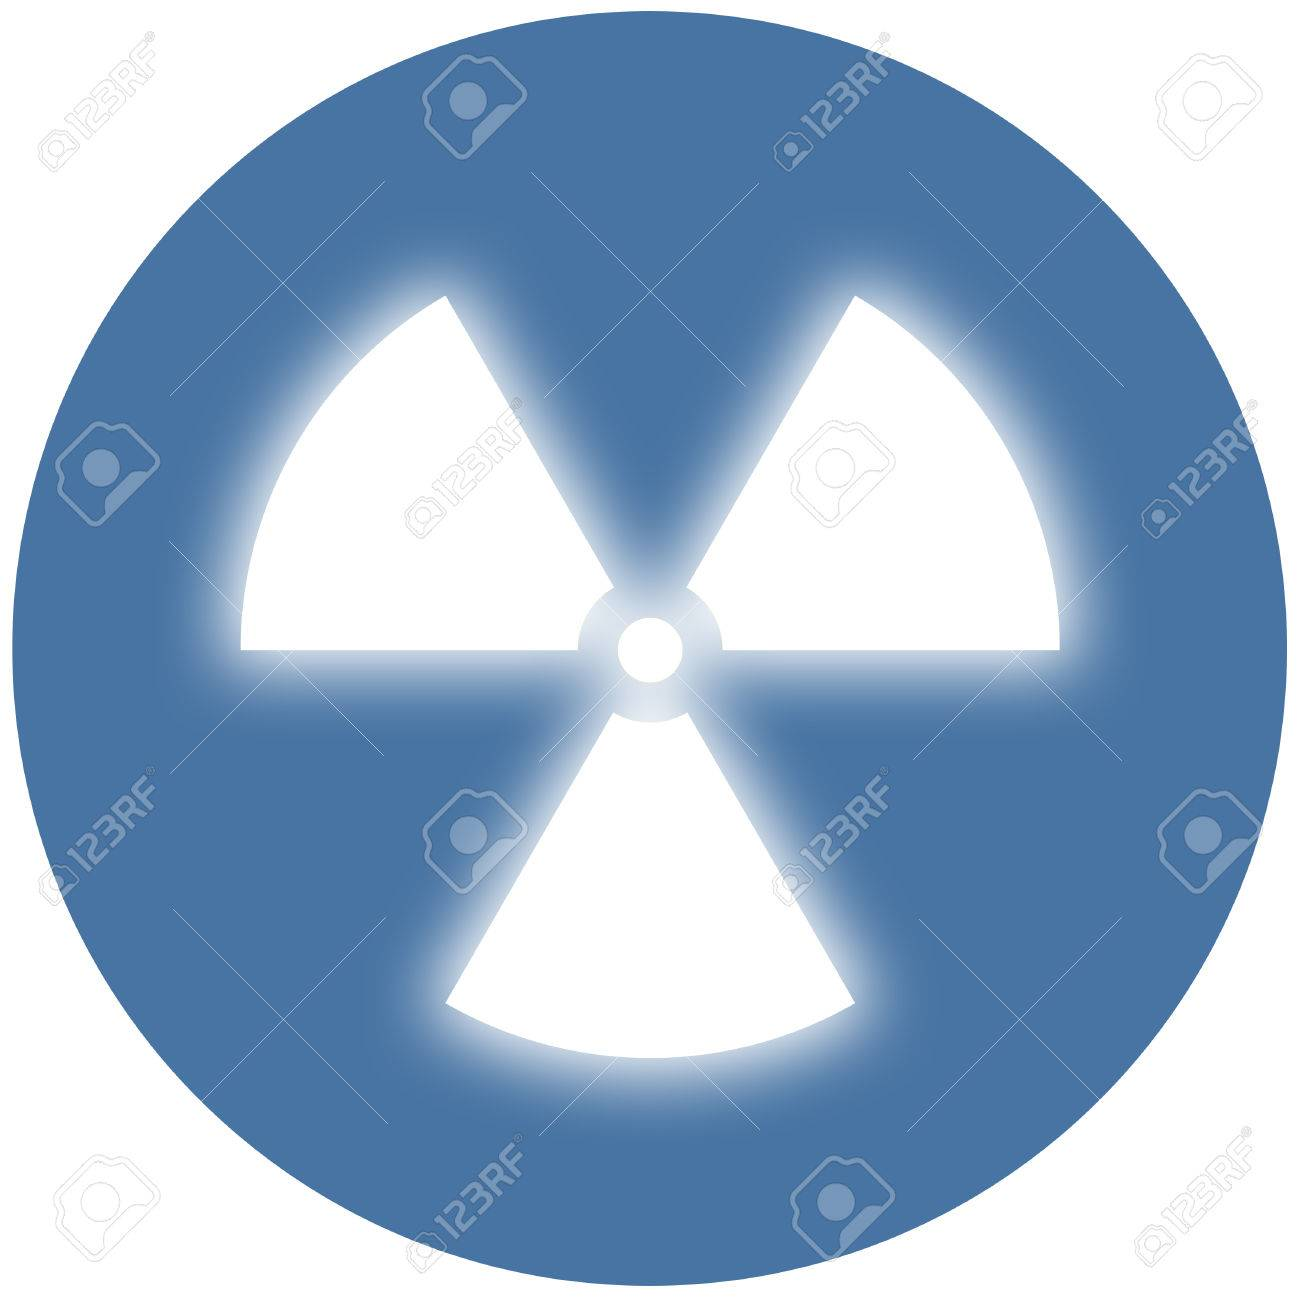 Nuclear radiation symbol on a blue background simple flat design nuclear radiation symbol on a blue background simple flat design stock photo 25970181 biocorpaavc Image collections